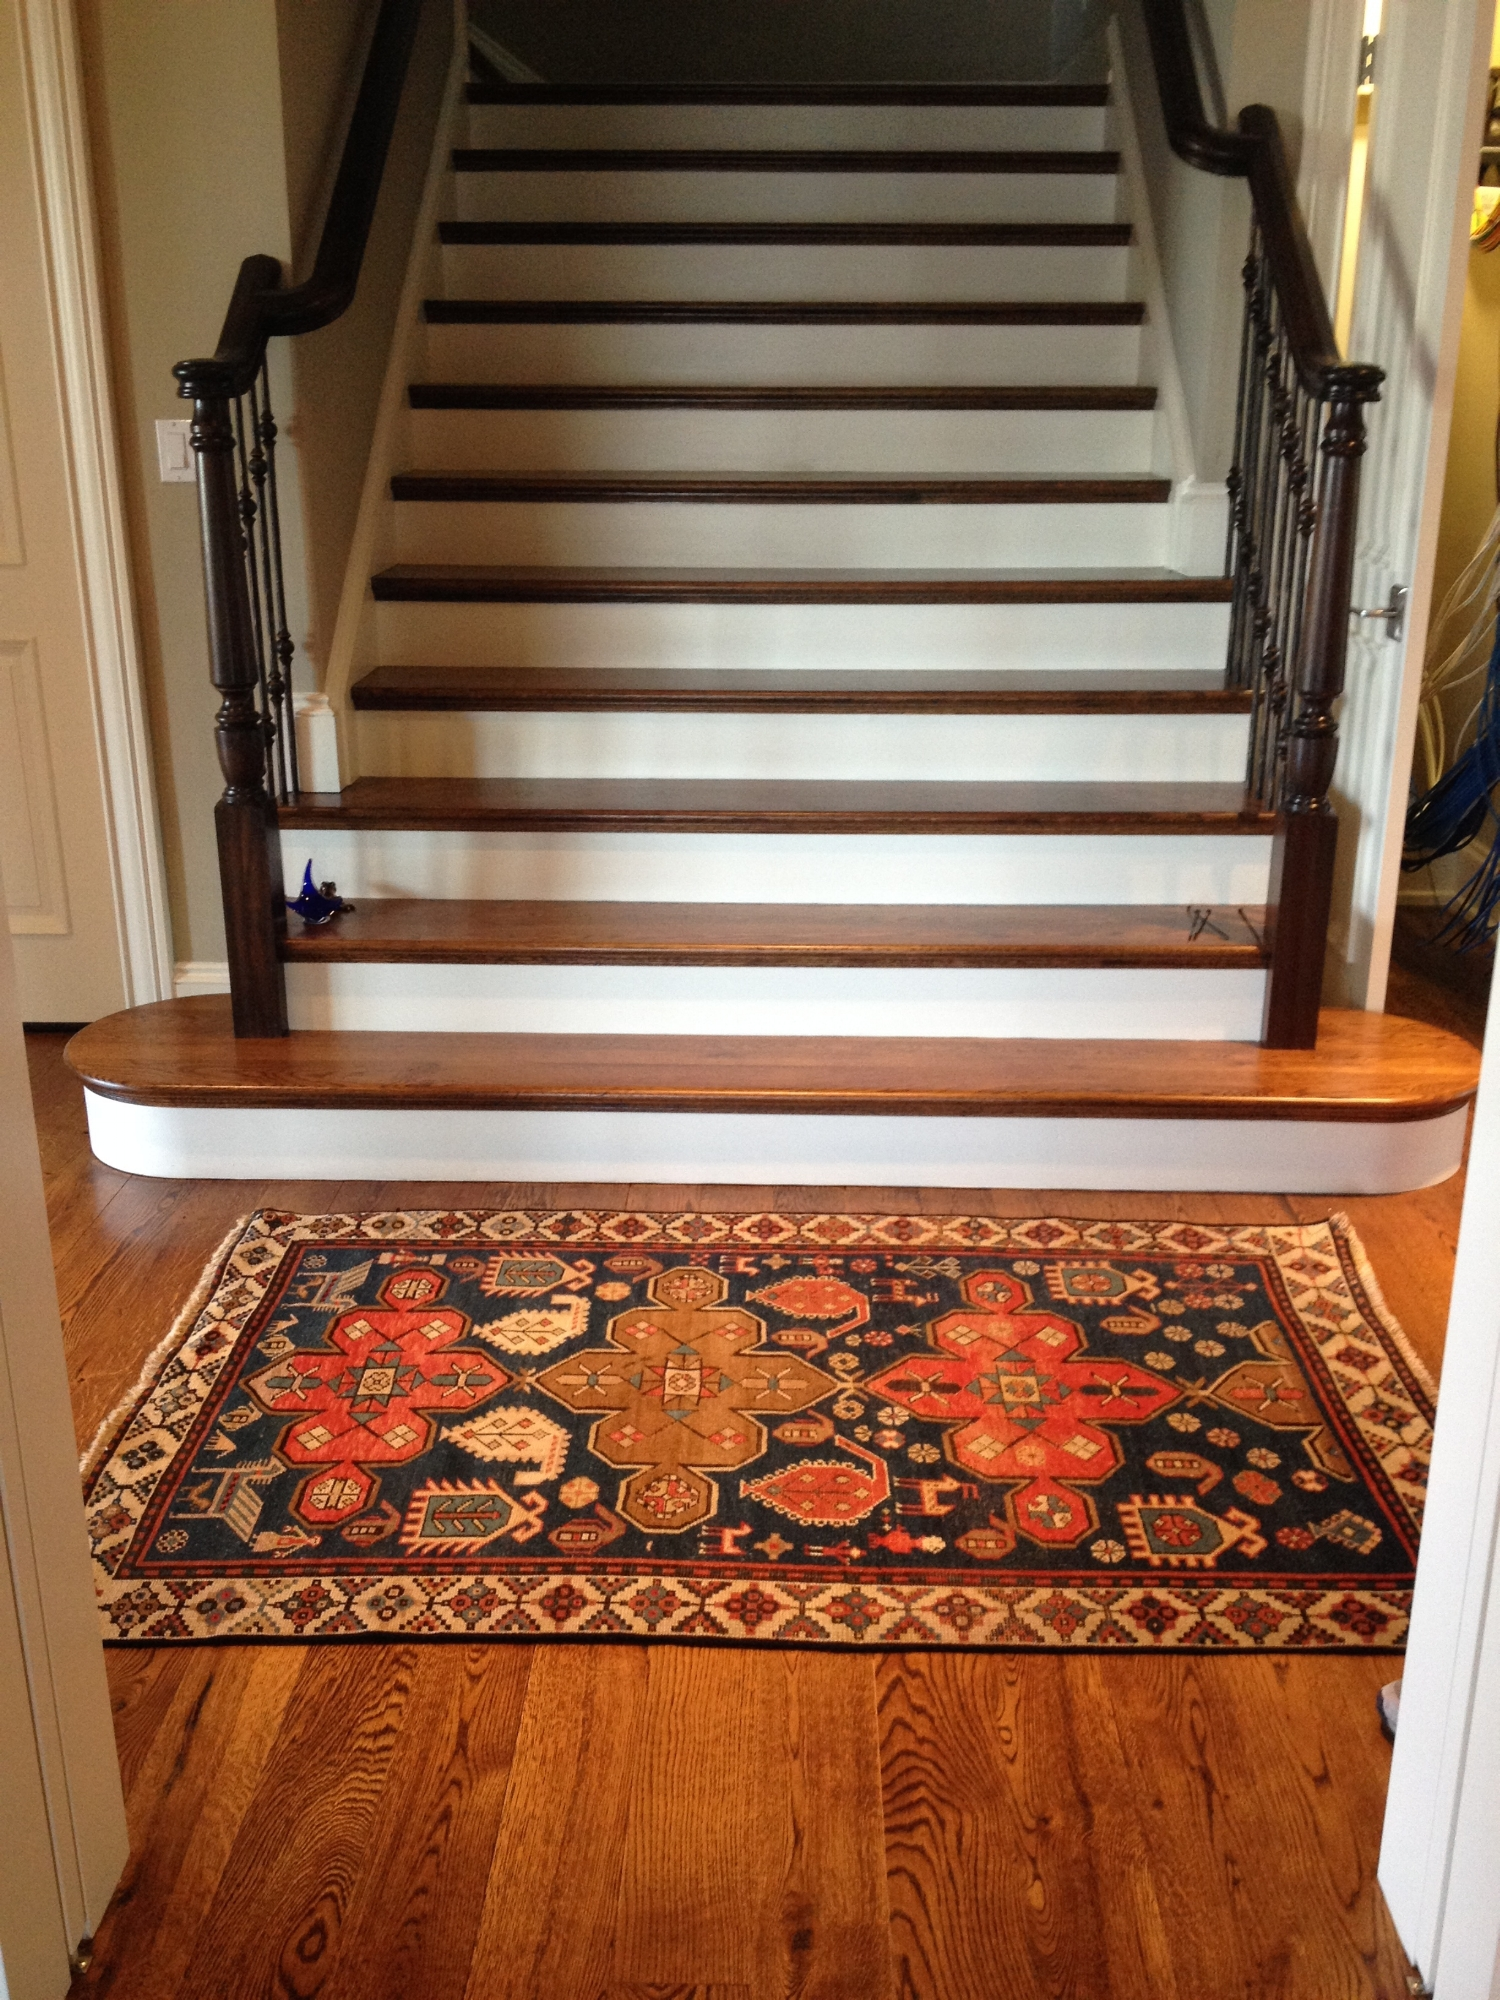 Antique Persian rug at the bottom of a beautiful set of stairs